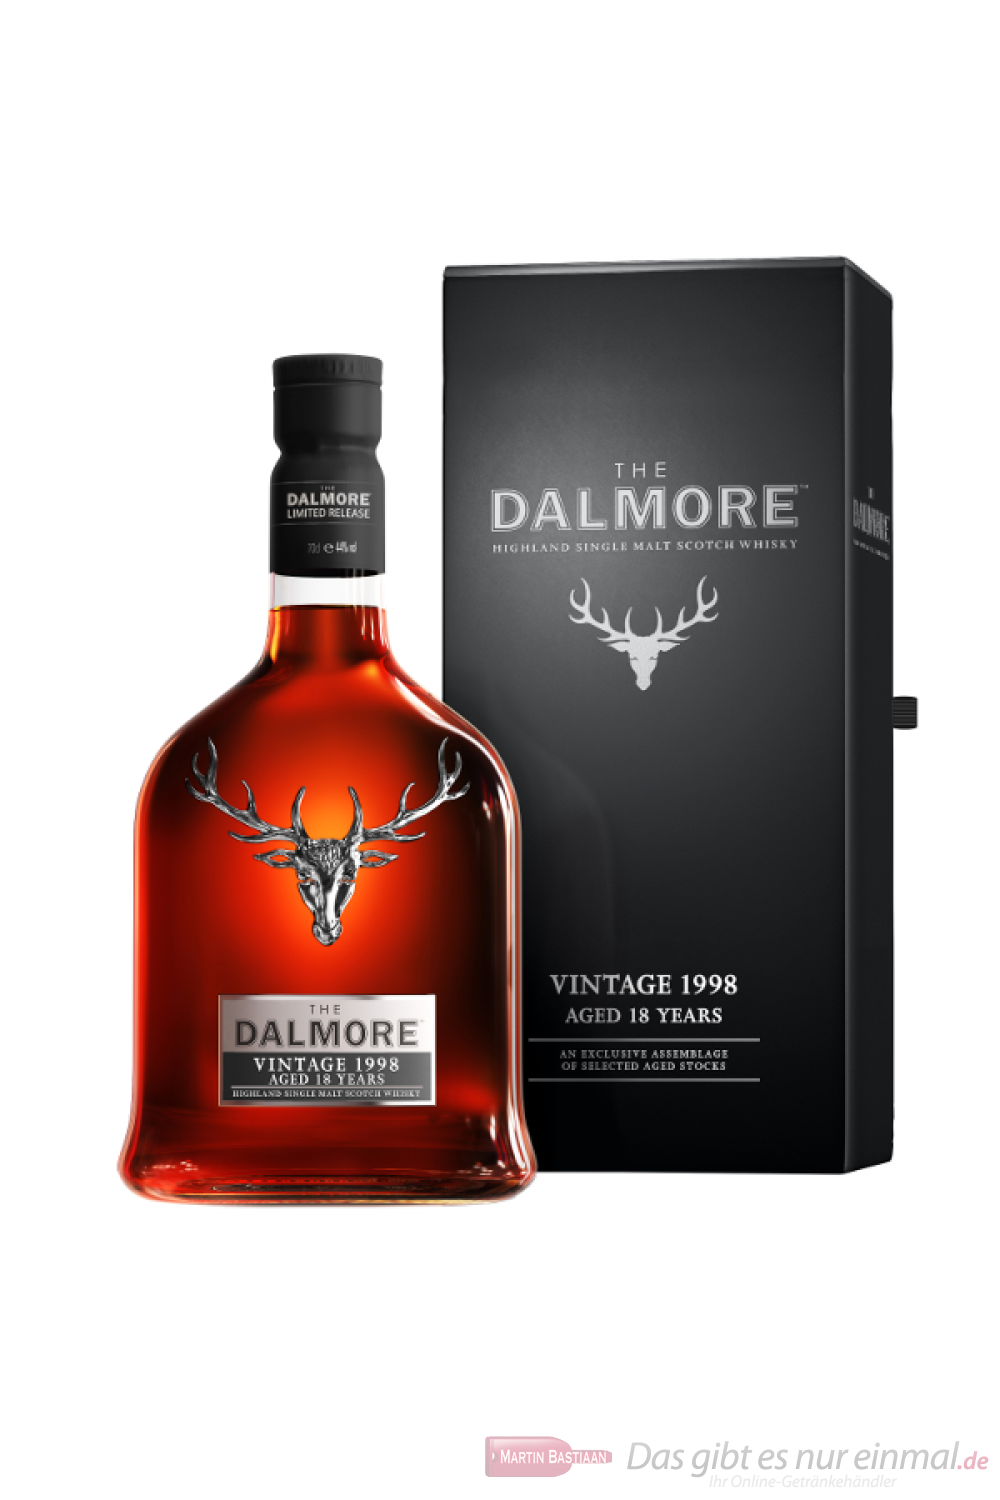 The Dalmore Vintage 1998